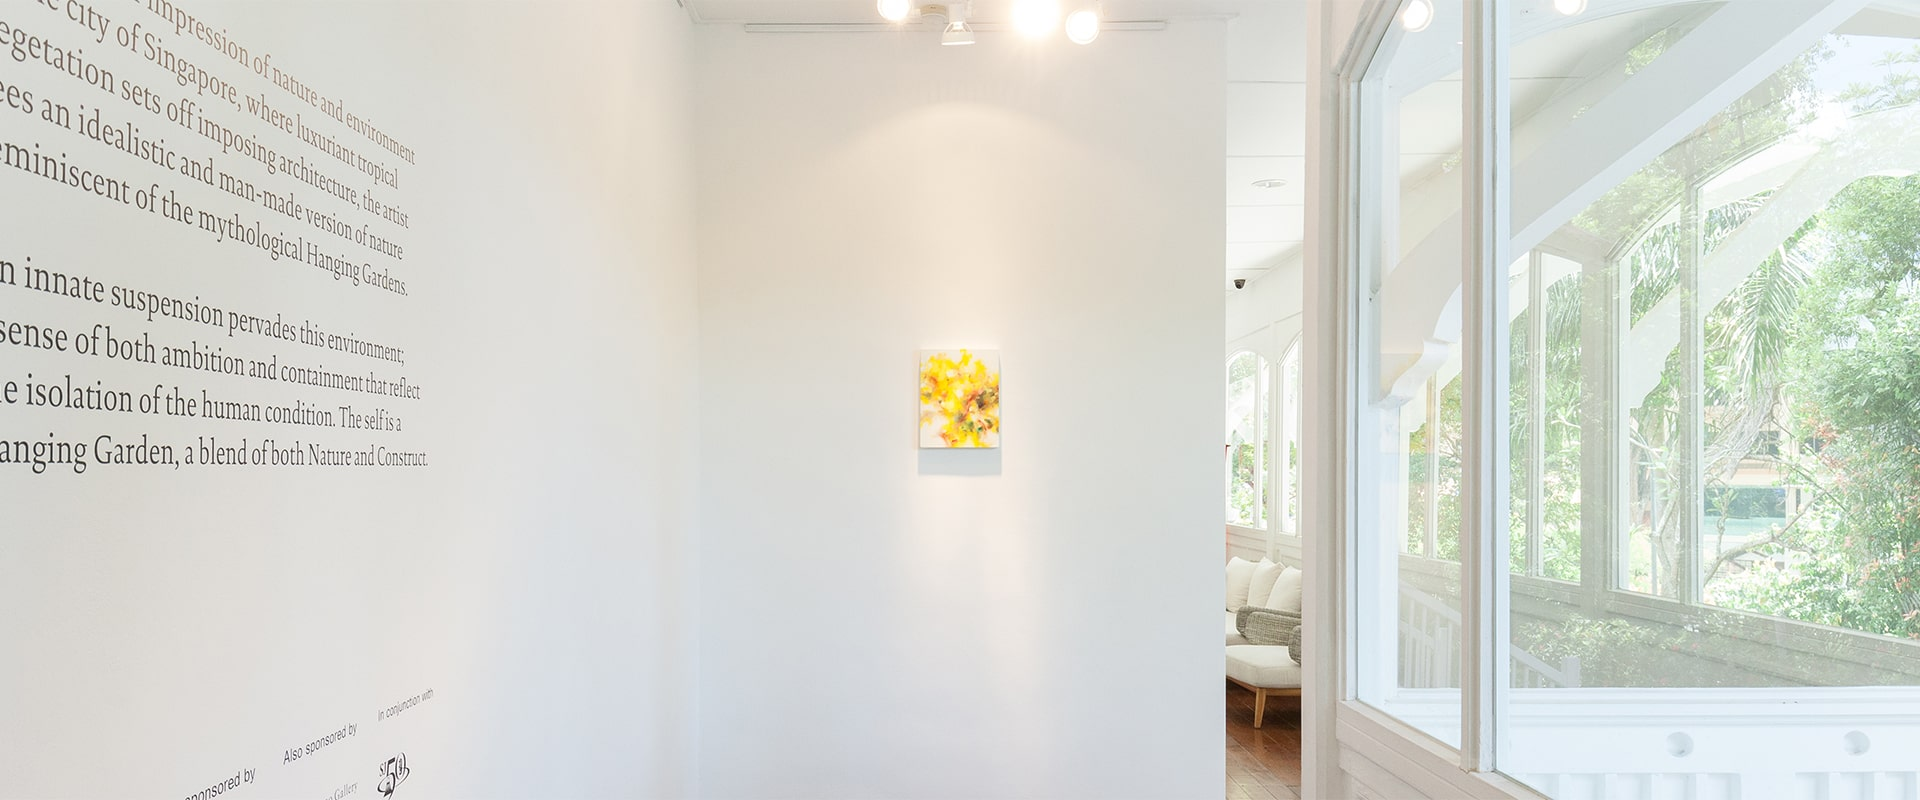 Infinite Set 5(YUKA TSURUNO Gallery, 2015)